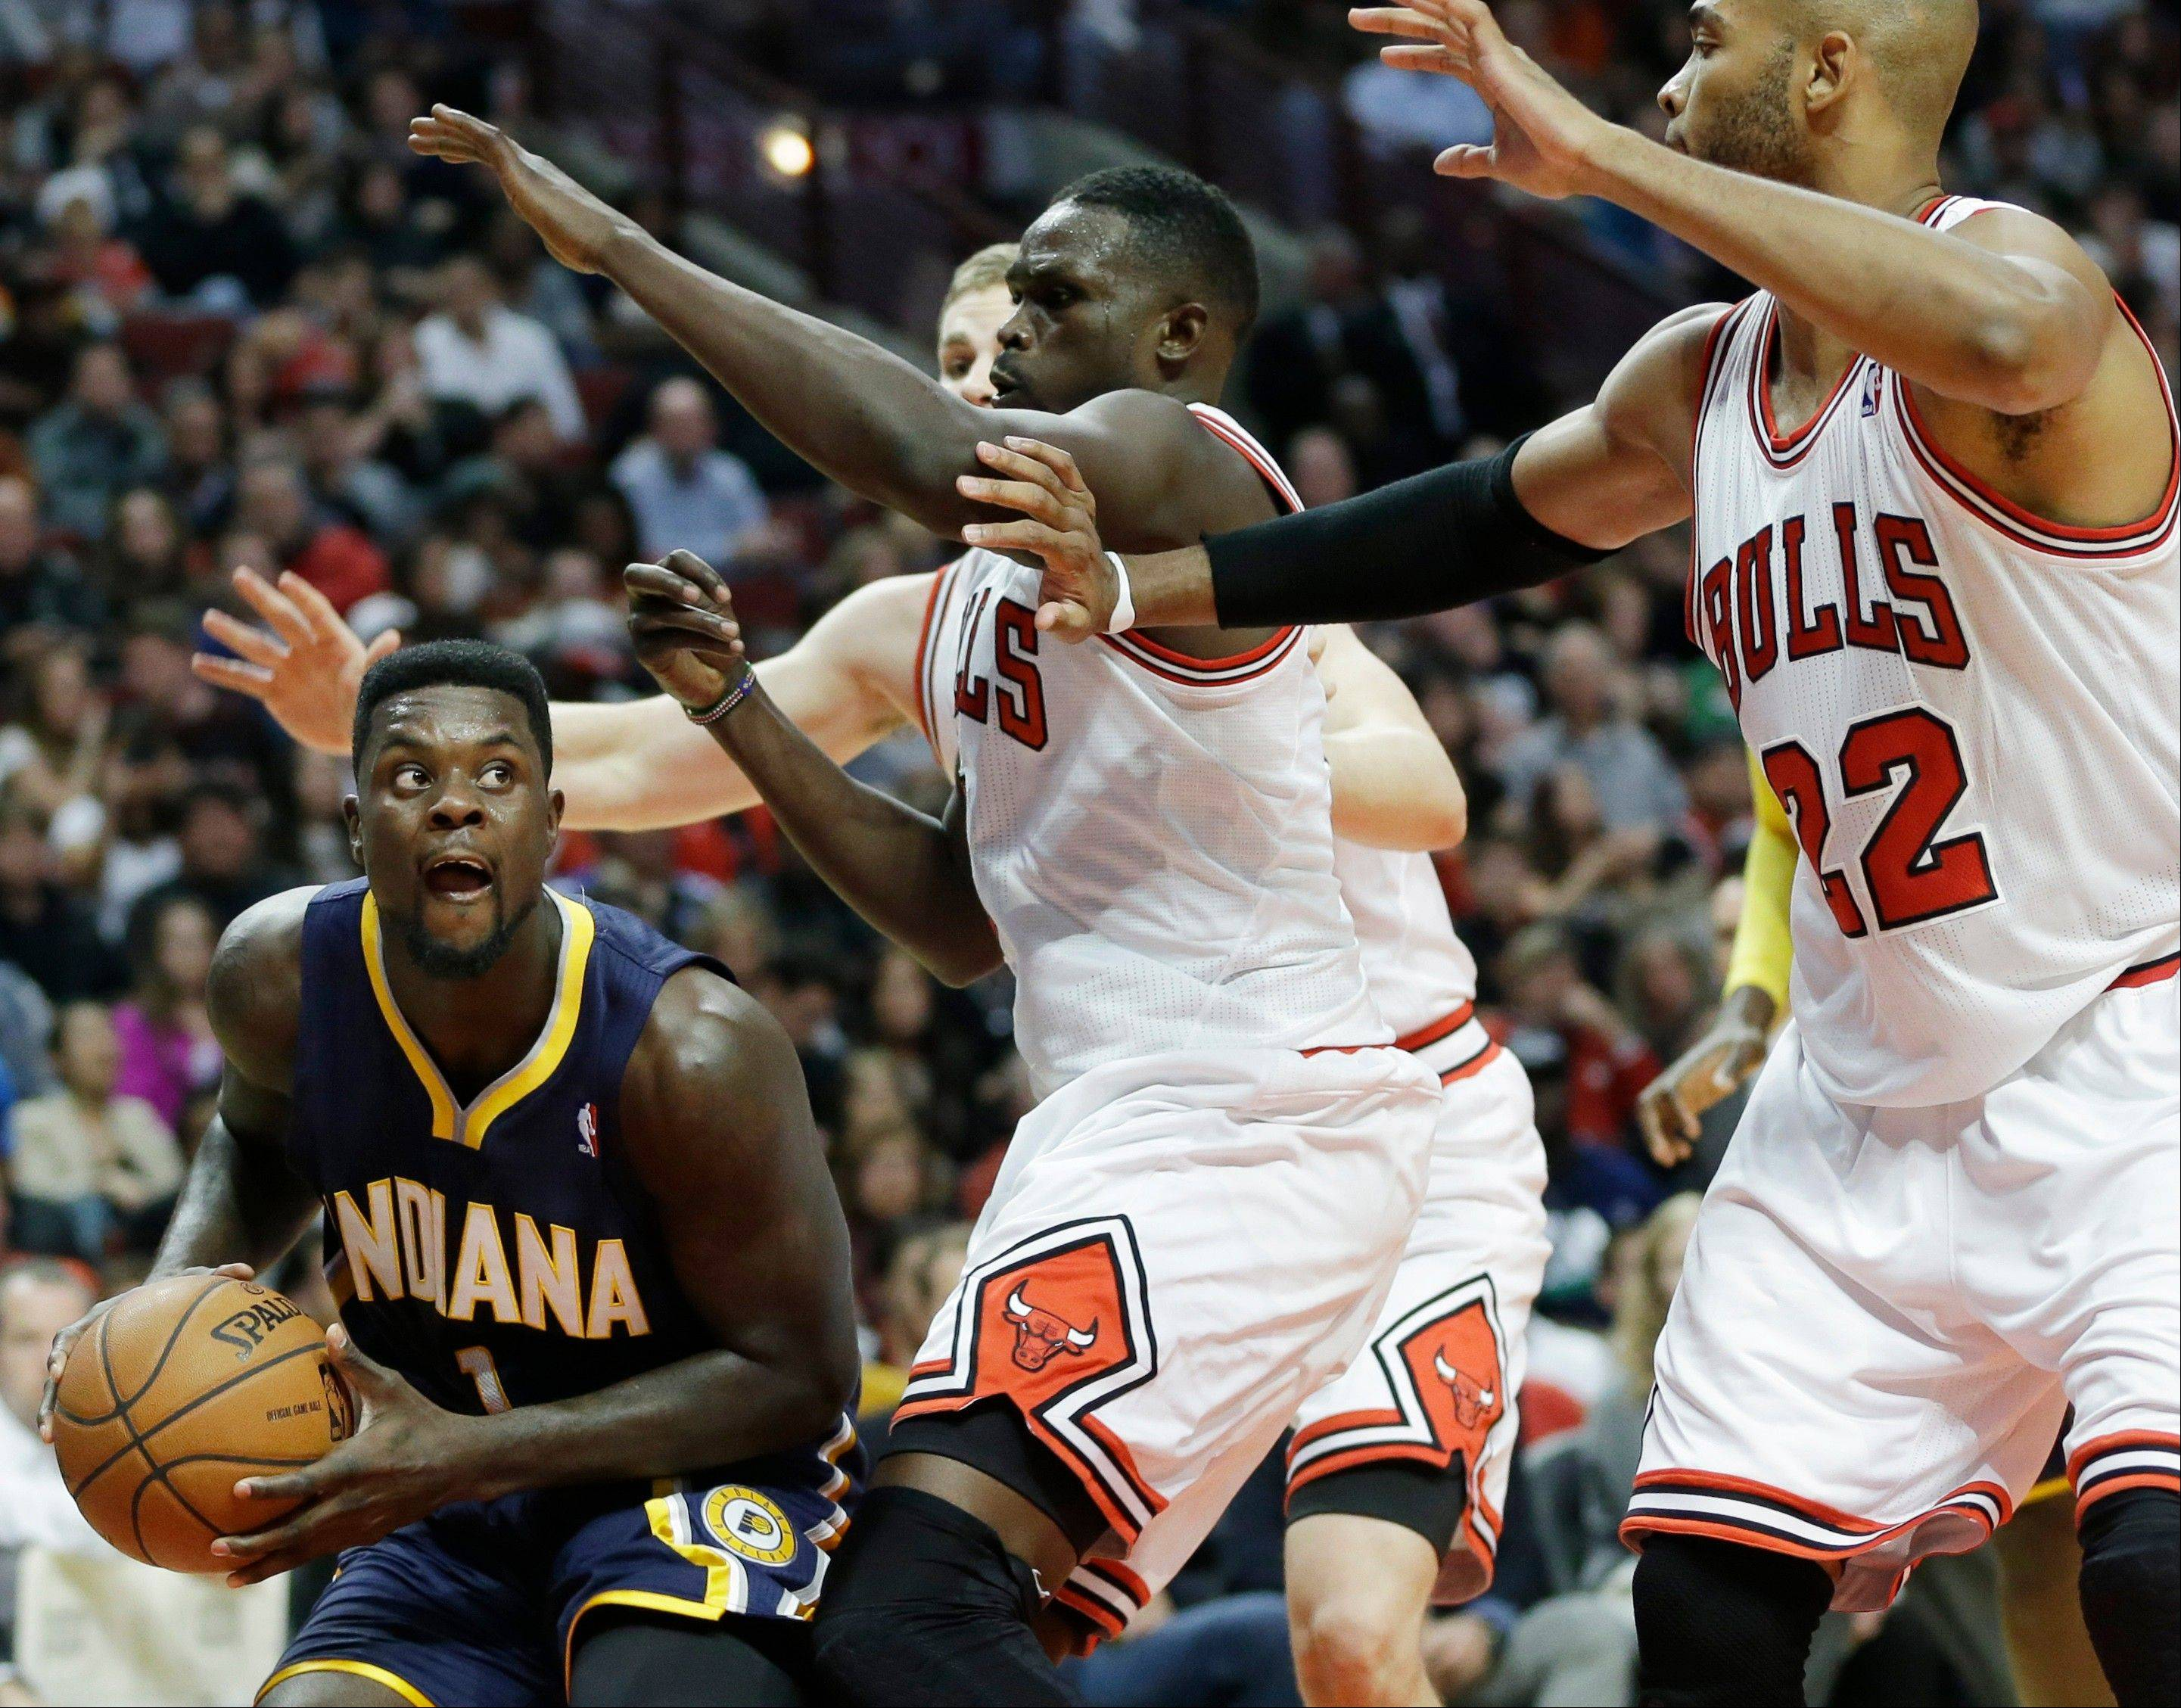 Indiana Pacers guard Lance Stephenson (1), left, looks to pass as Chicago Bulls' Luol Deng (9), Erik Murphy (31) and Taj Gibson (22) guard during the second half of an NBA preseason basketball game in Chicago on Friday, Oct. 18, 2013. The Bulls won 103-98.